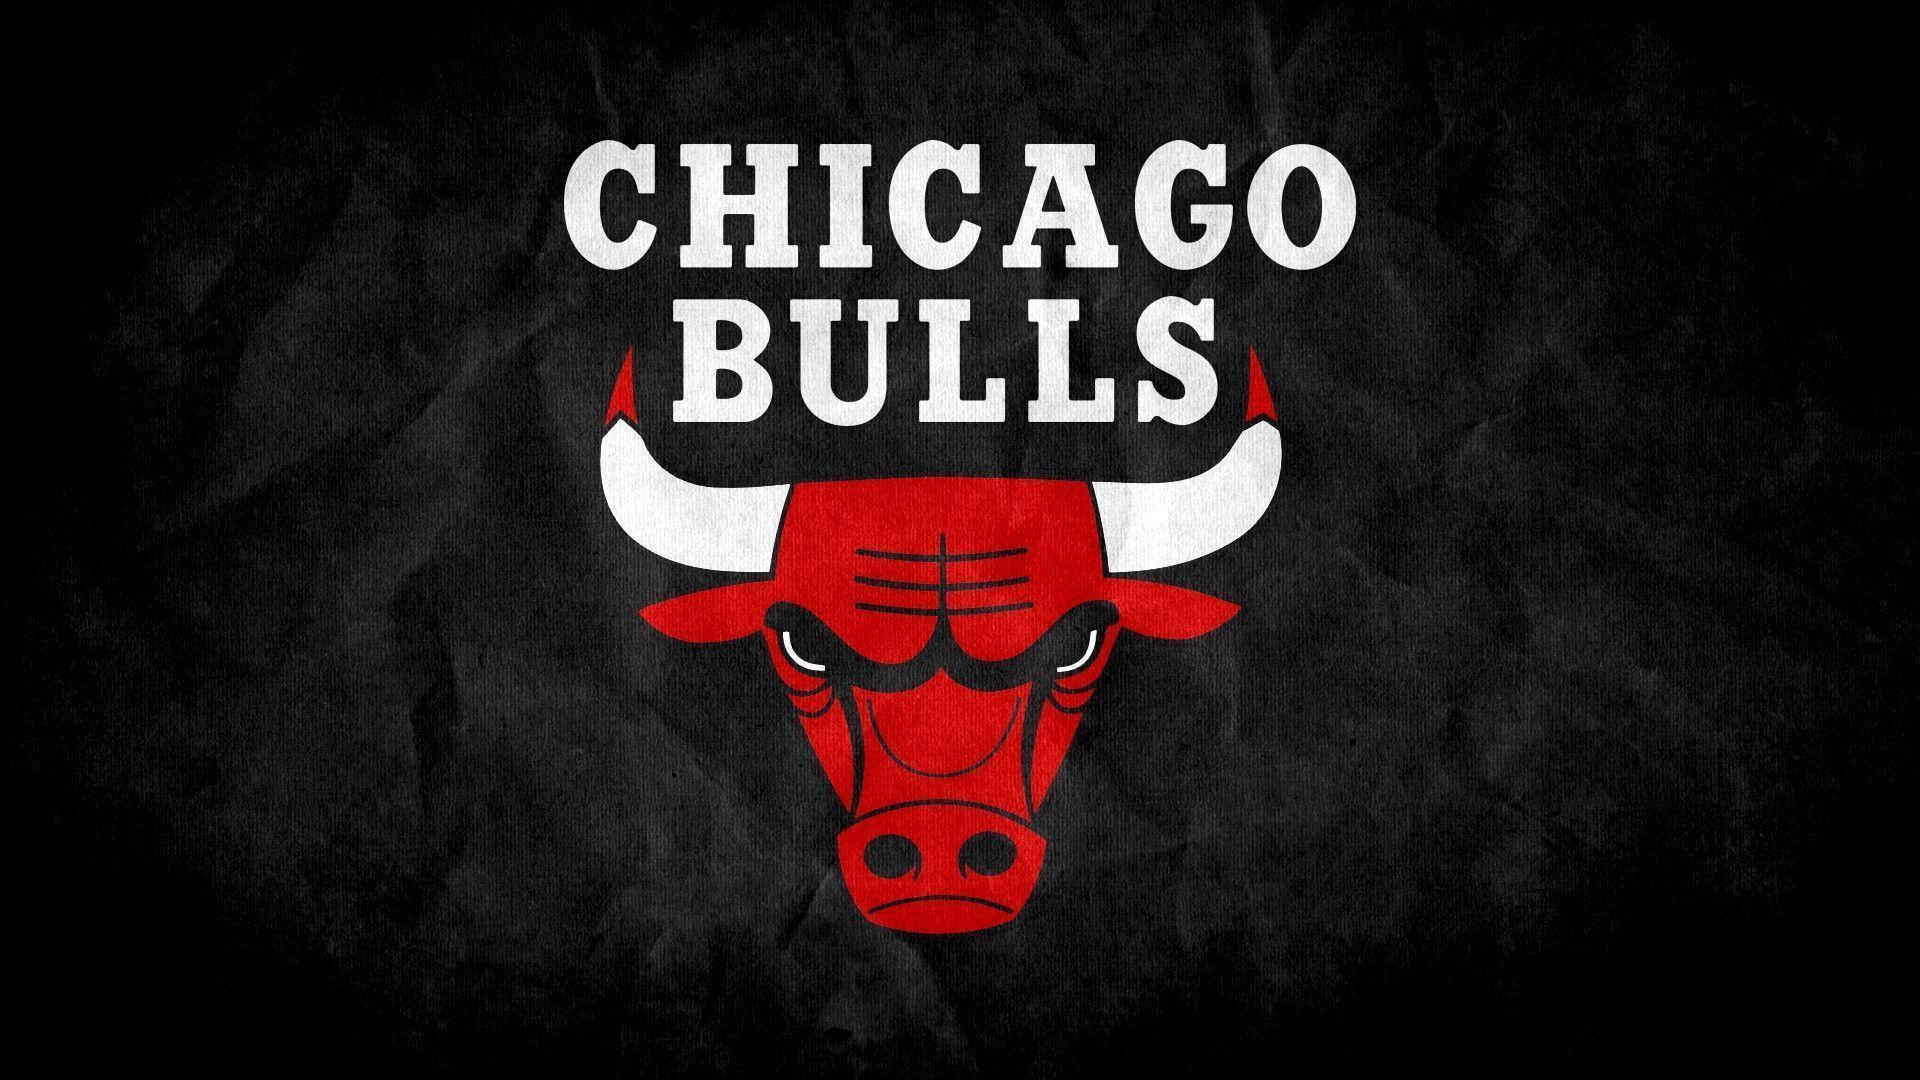 Chicago Bulls wallpapers | Chicago Bulls background - Page 5